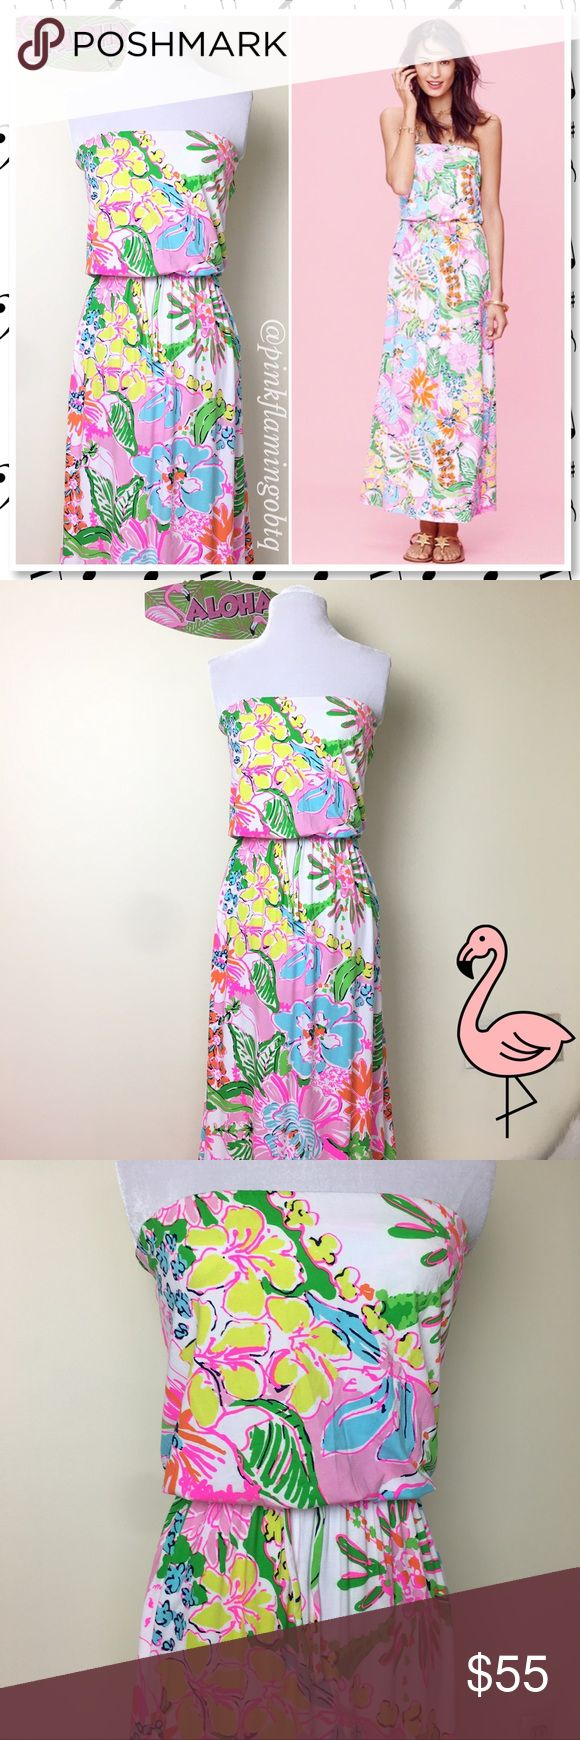 NWOT Lilly Pulitzer for Target Nosie Posey NWOT Lilly Pulitzer for Target Nosie Posey Strapless Maxi Dress. Summer is too short not to have fun, so celebrate in this chic style maxi dress with a bold pastel floral pattern that is about as fun as it gets. With a built in bra, elastic top and waist made with rayon and a hint of spandex, this dress is so comfy you'll never want to take it off! Limited edition Target collaboration *note: tiny hole in bottom of dress, so small i almost missed it…